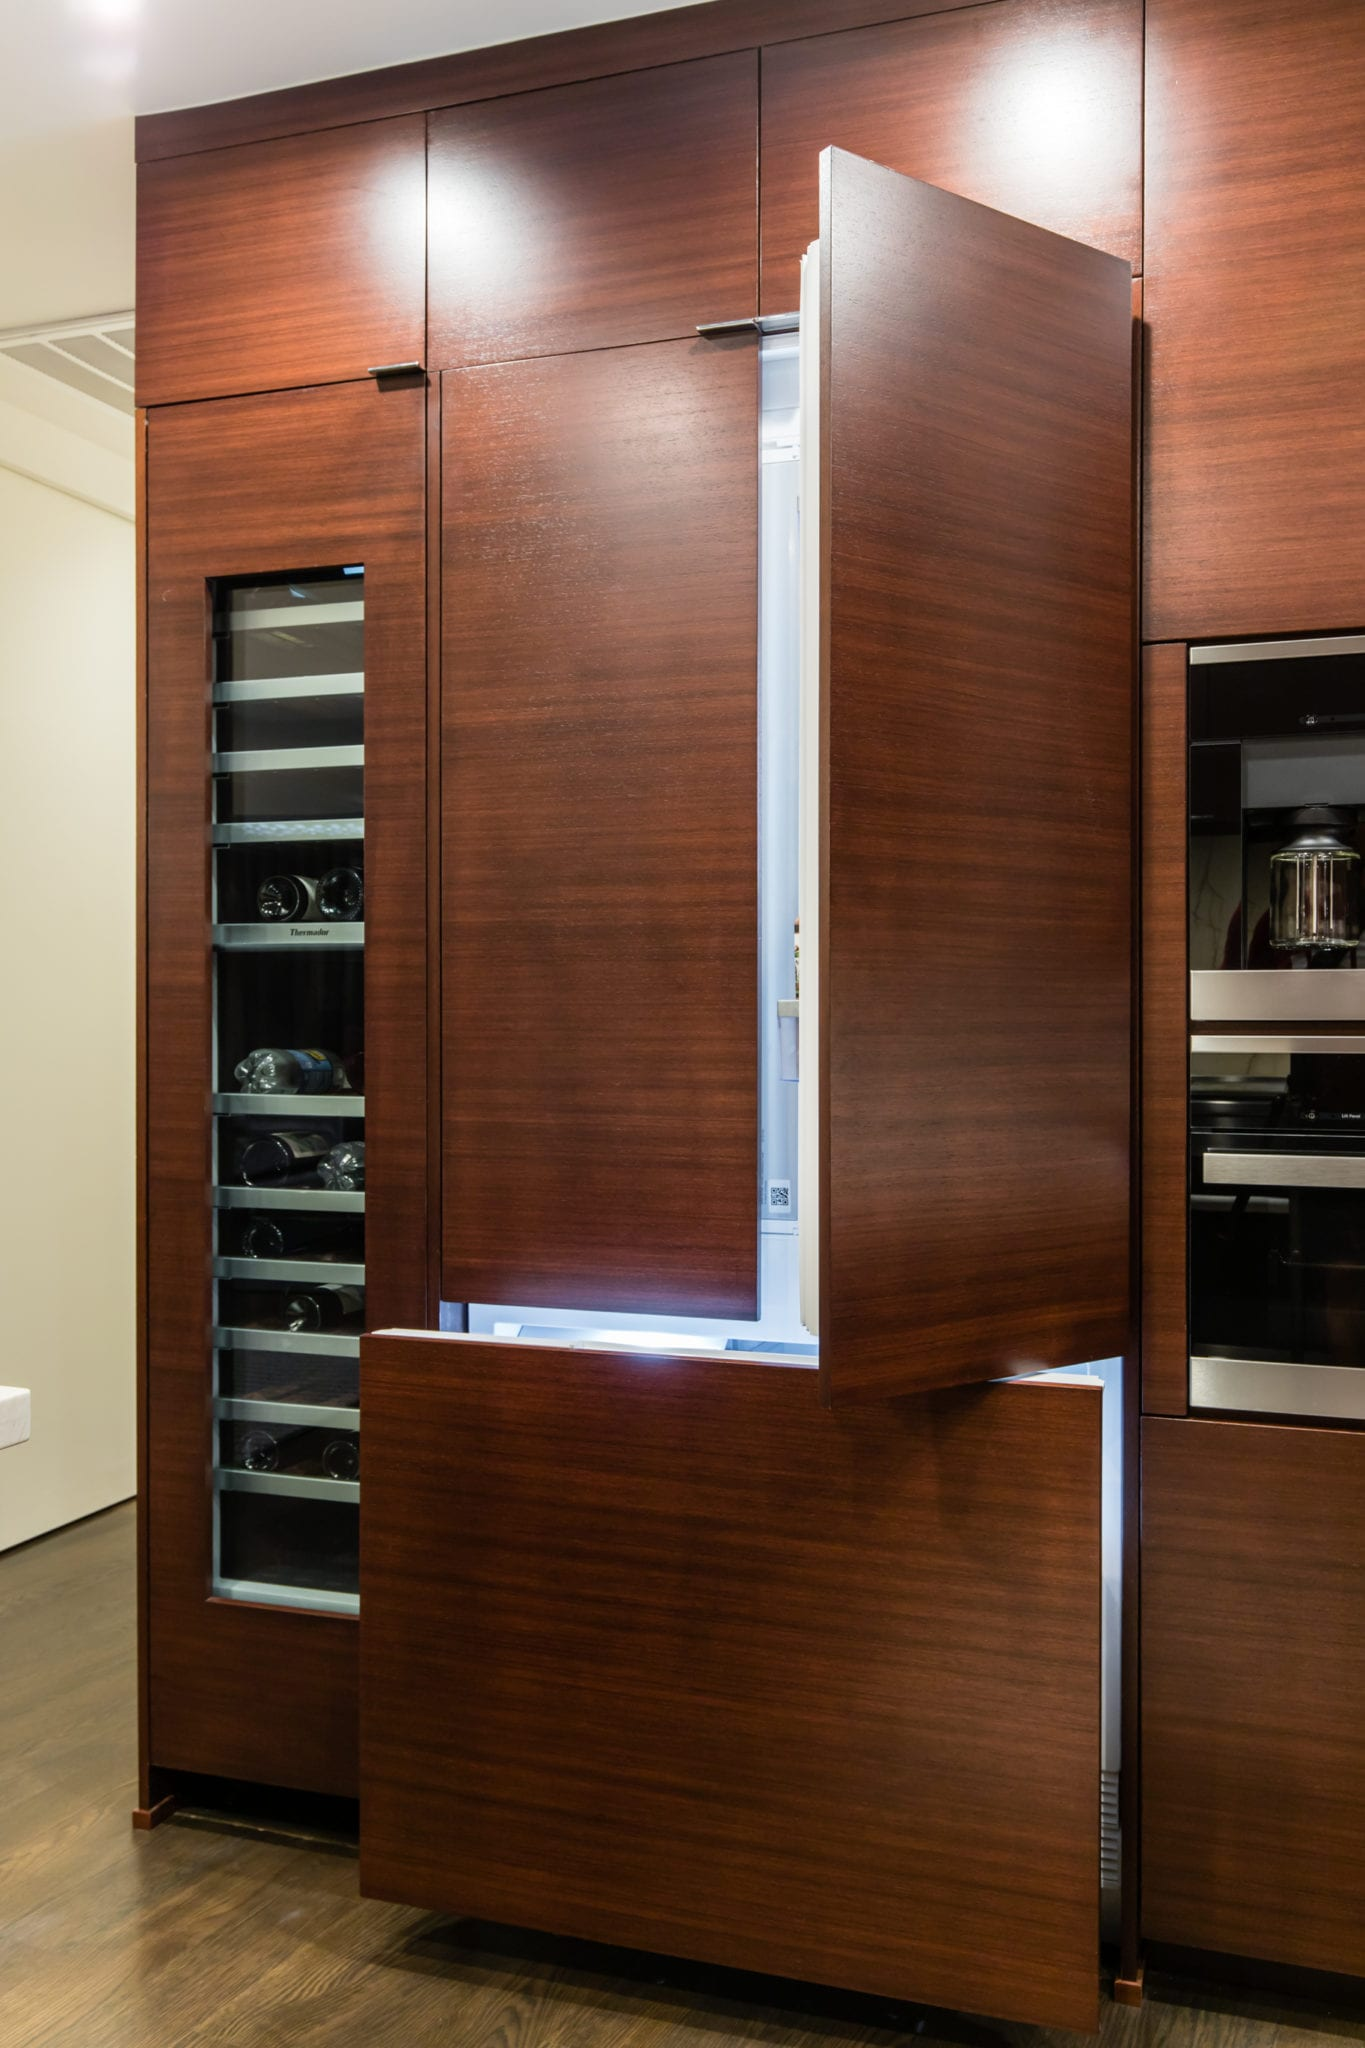 Kitchen-2-story-high-rise-condo-remodel-The-Travis-Katy-Trail-Kitchen-Cabinet-for-refrigerator